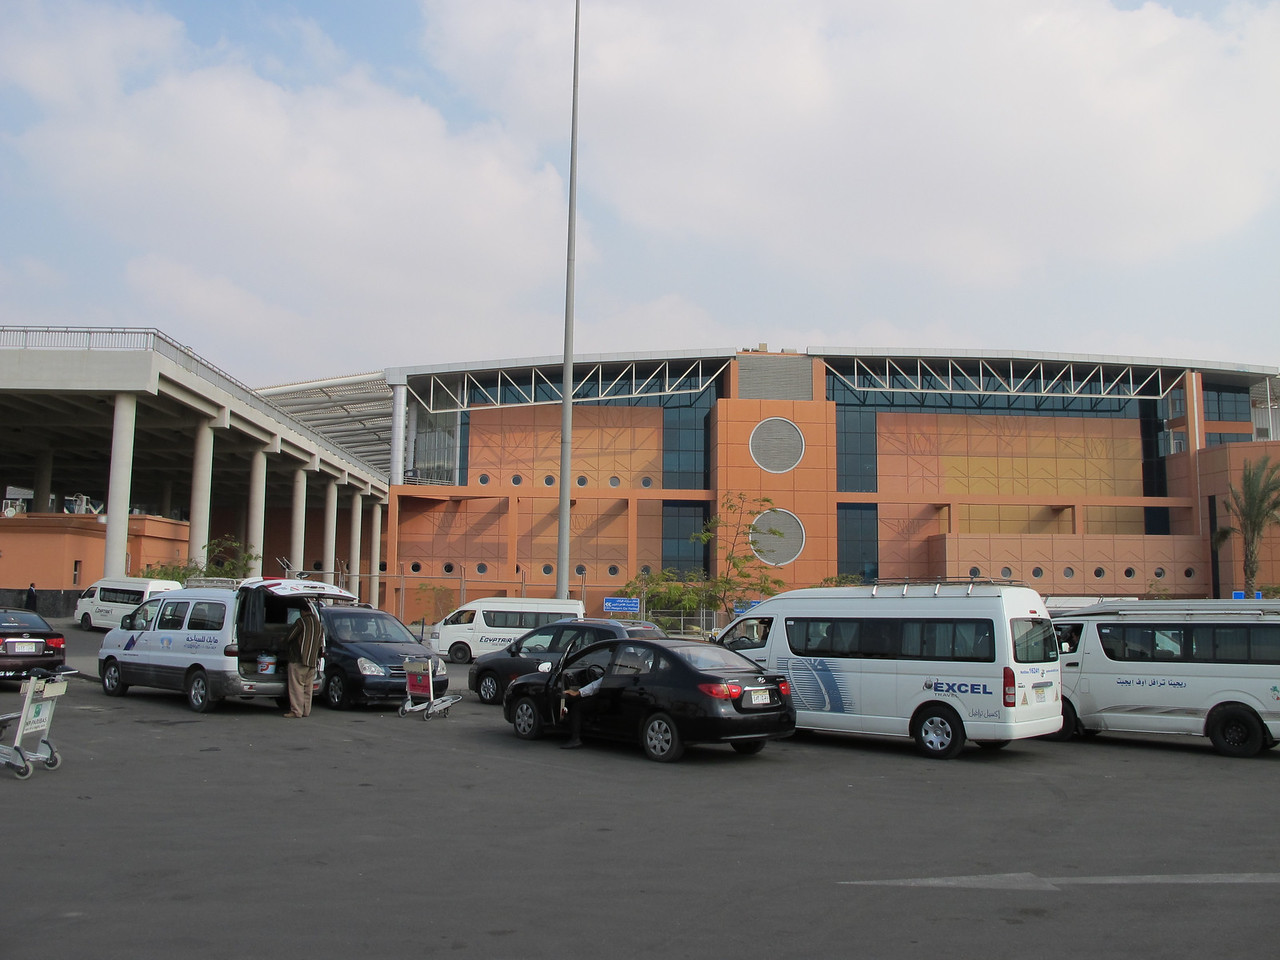 The international terminal at the Cairo airport.